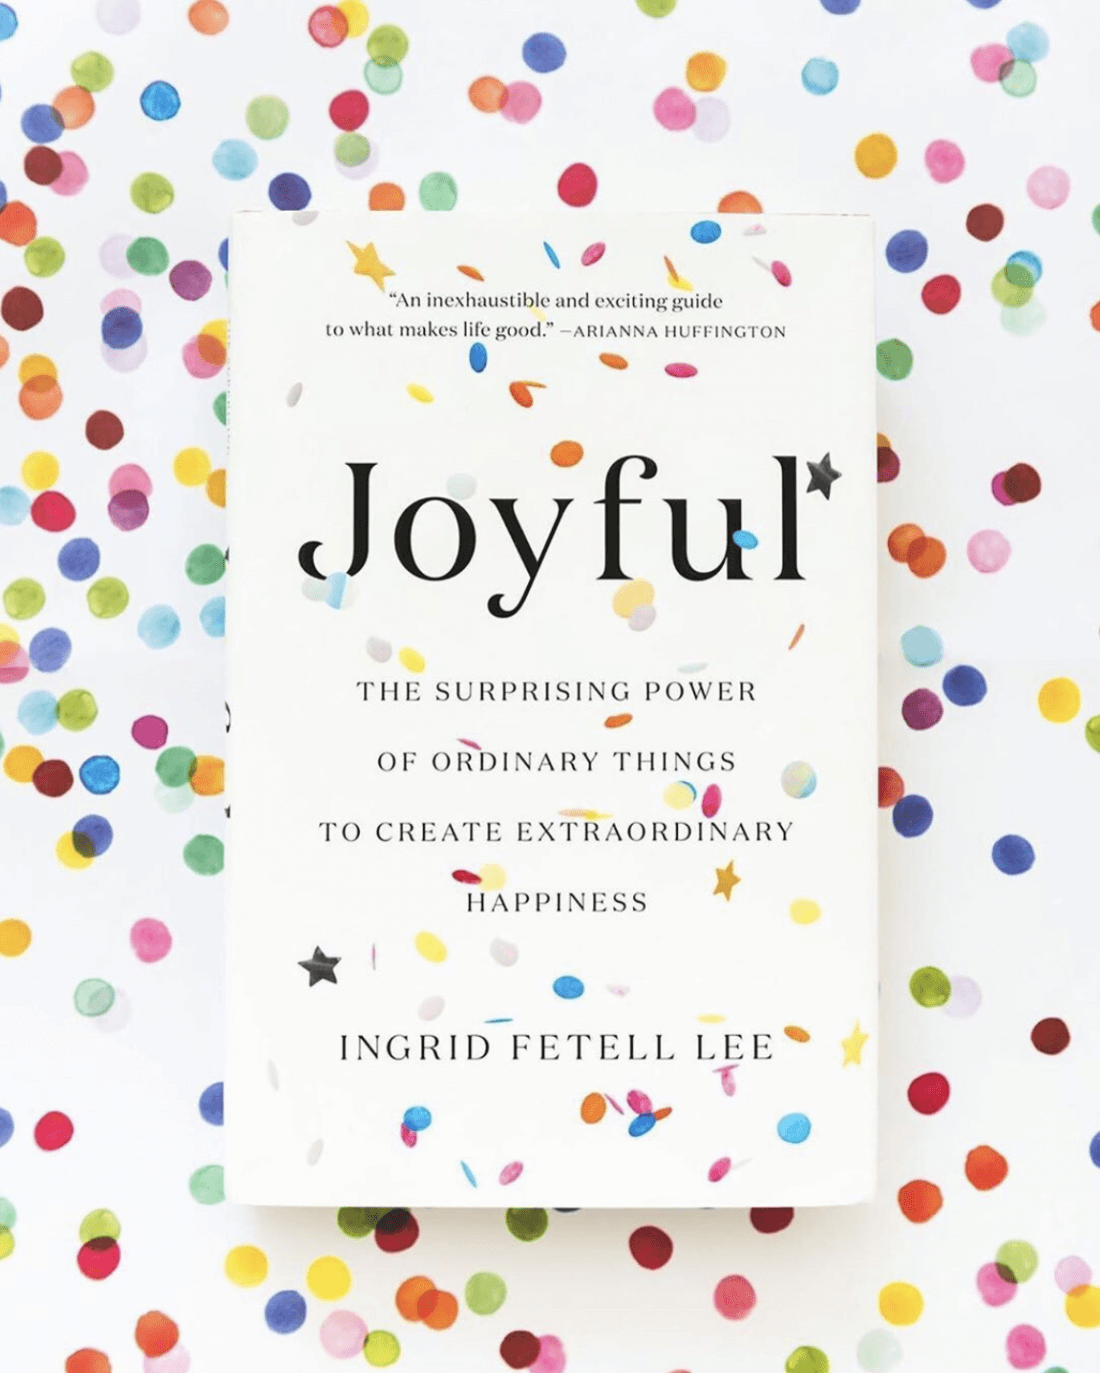 The Aesthetics of Joy by Ingrid Fetell Lee